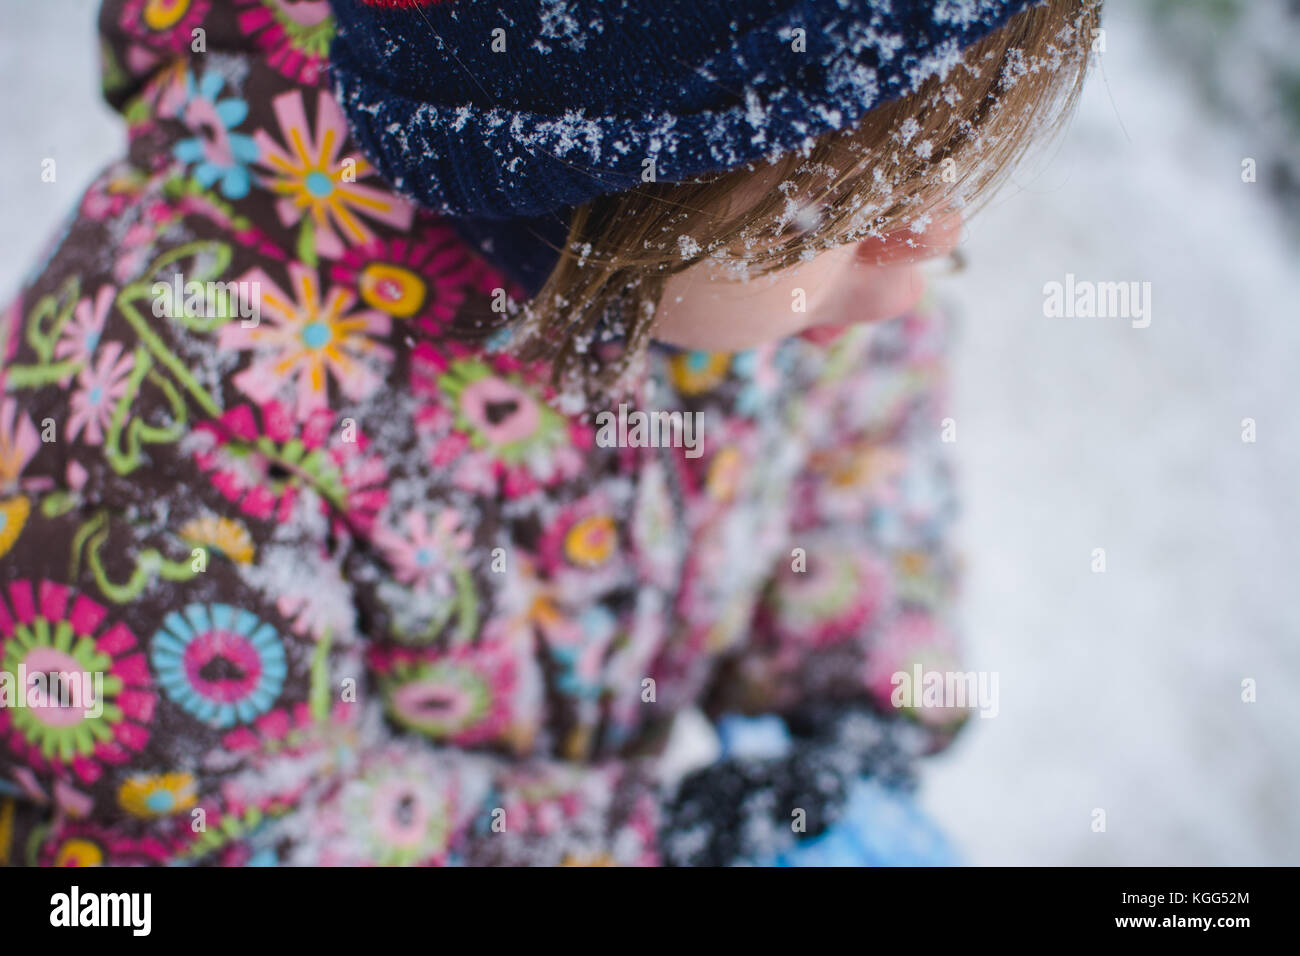 A toddler stands outside wearing winter clothes with snow around her. - Stock Image